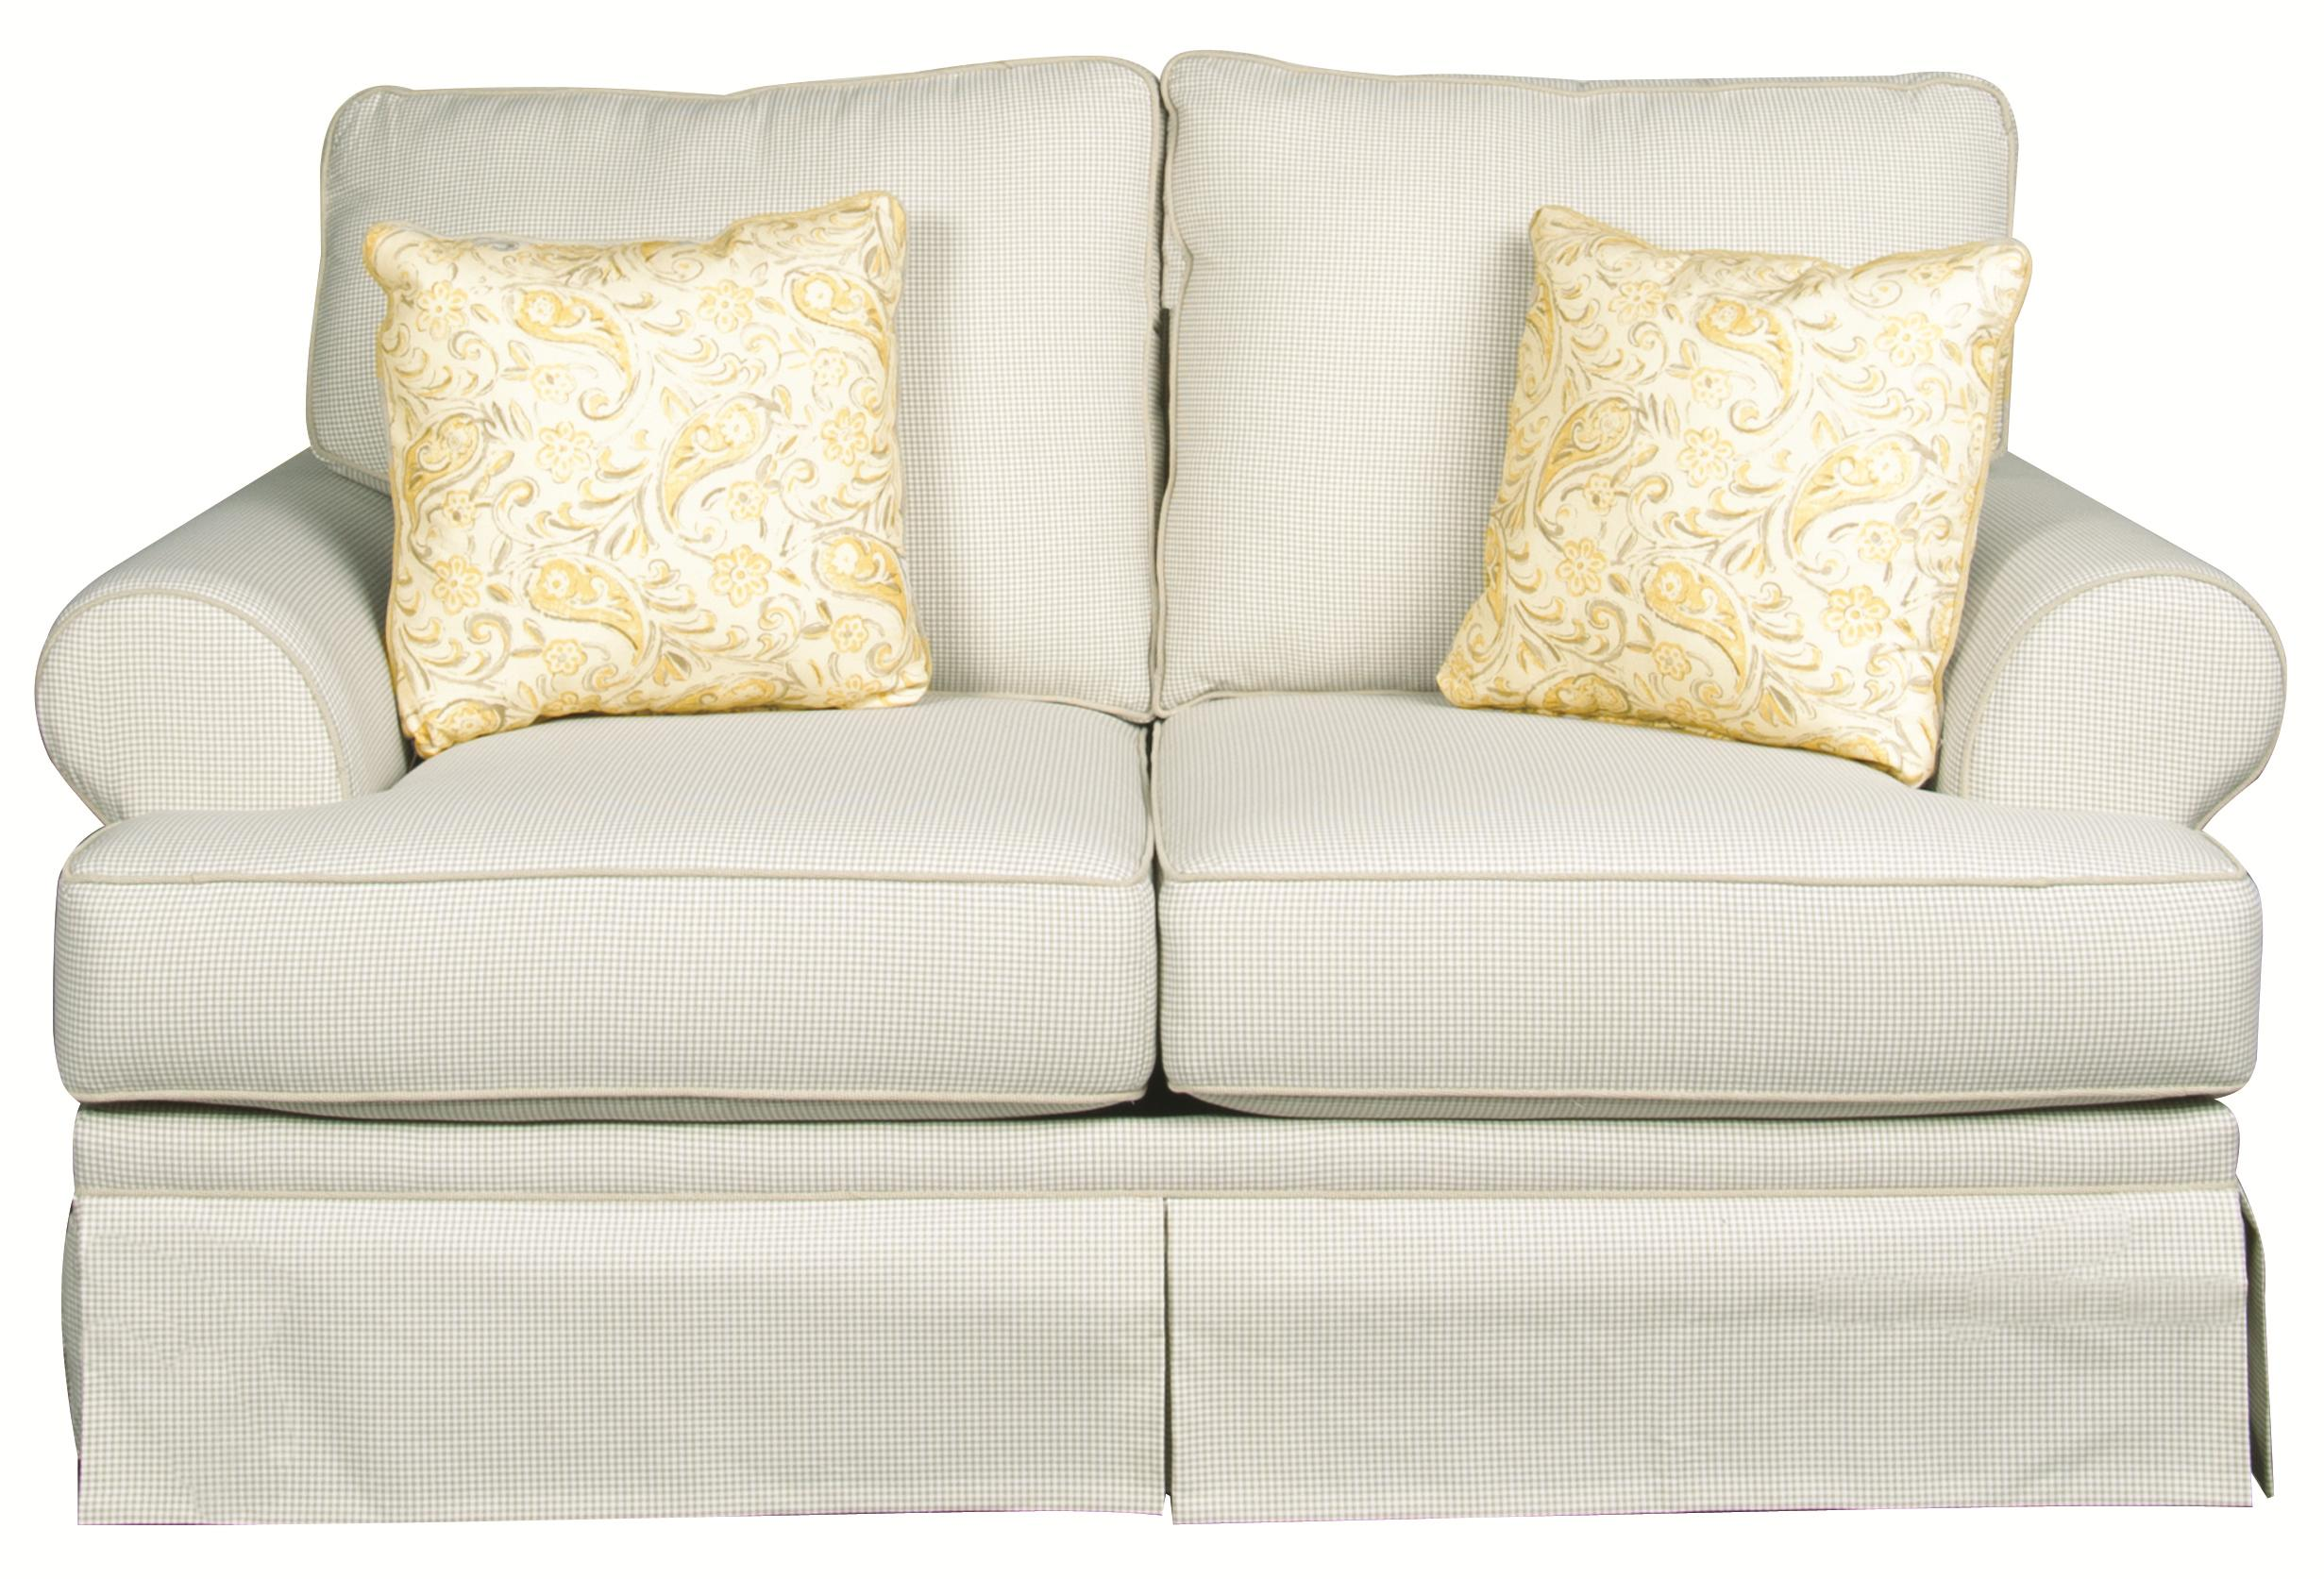 Elliston Place Amelia Amelia Loveseat - Item Number: 104876694